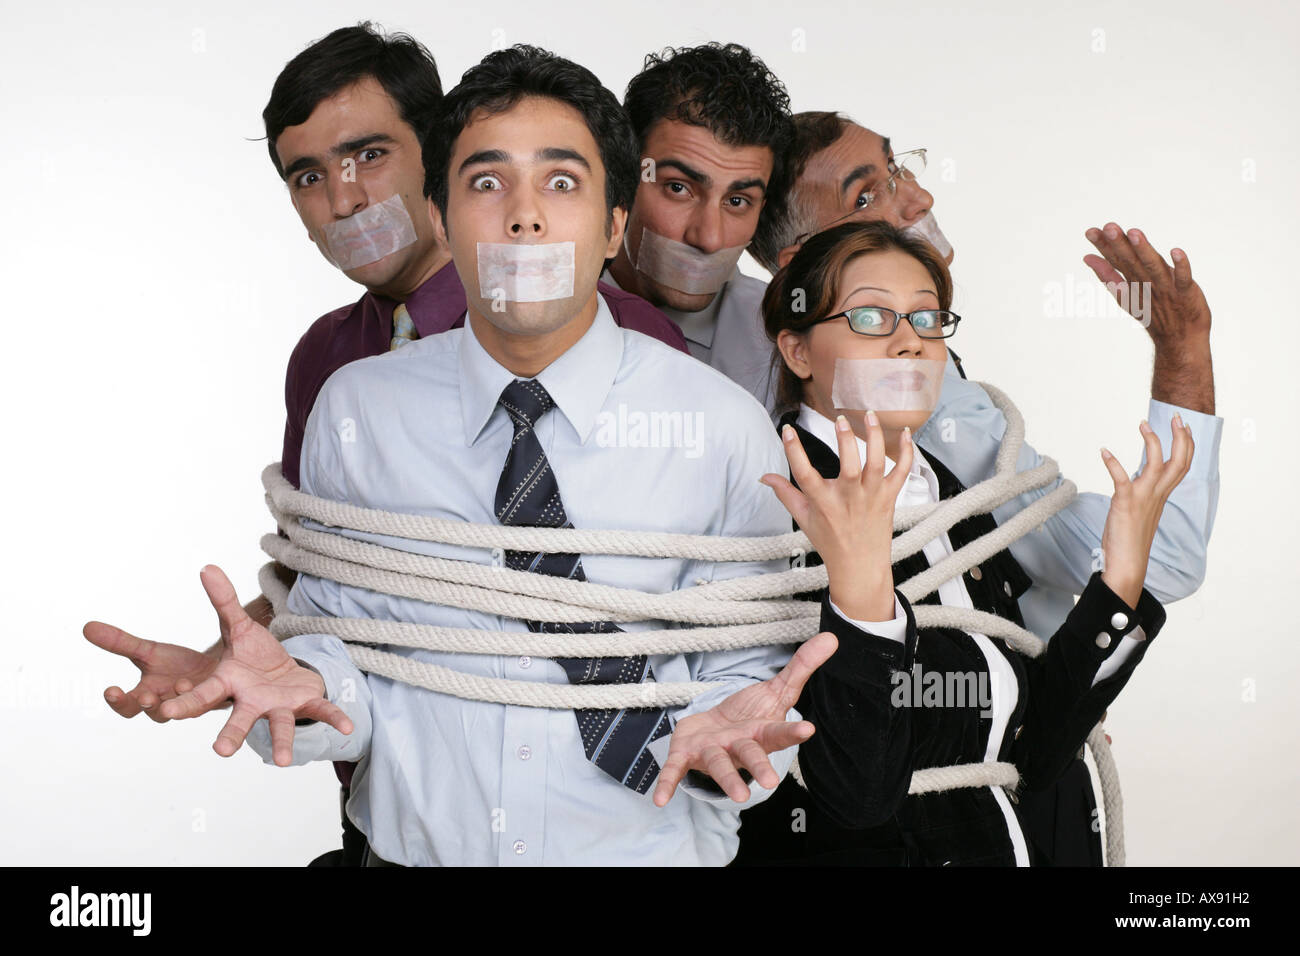 Portrait of five business people tied up with ropes - Stock Image